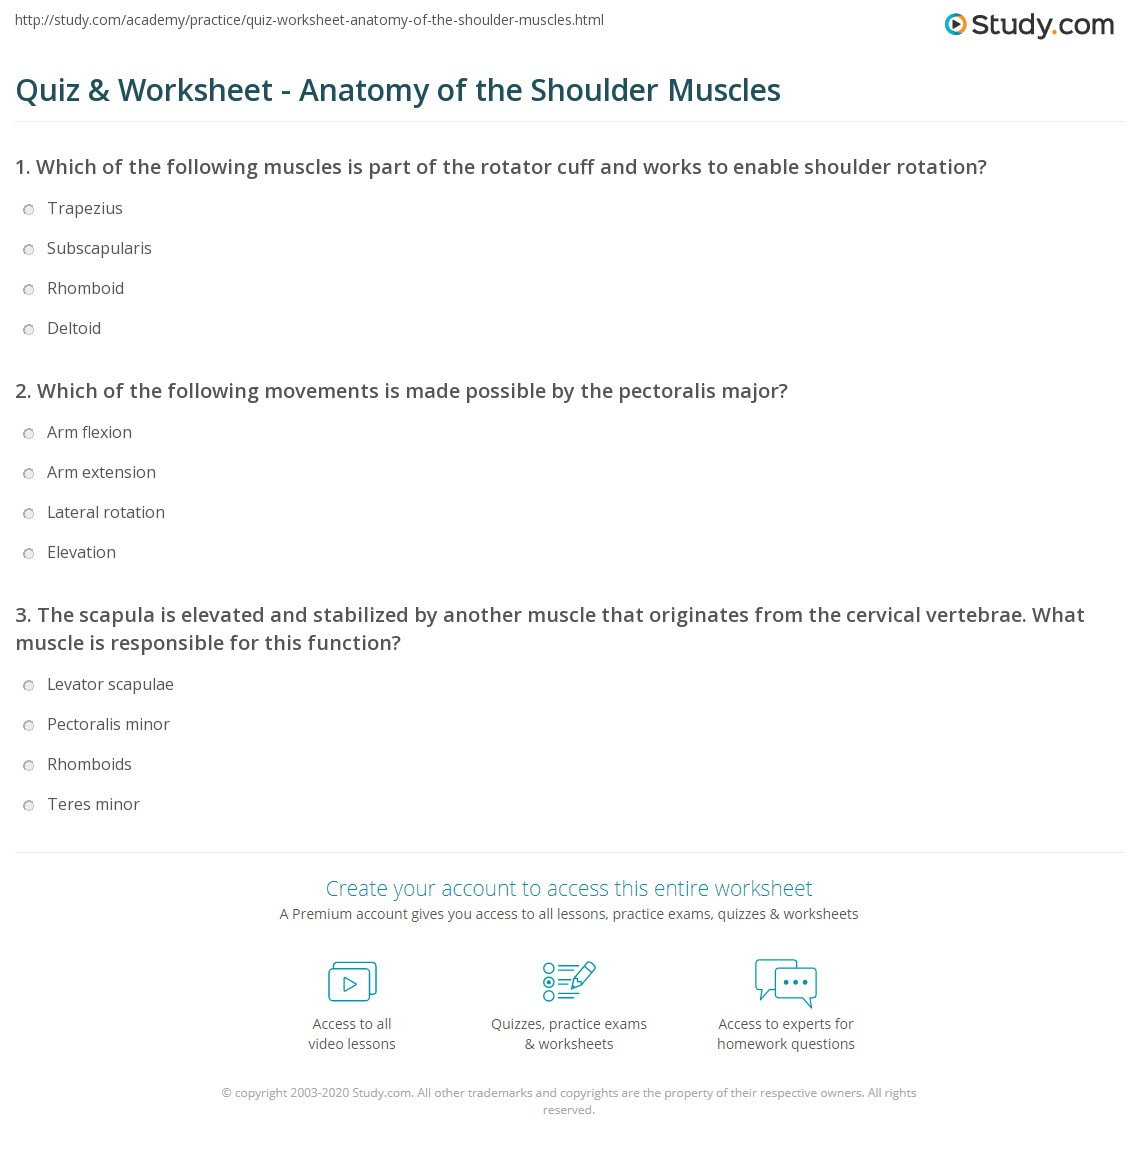 Quiz Worksheet Anatomy Of The Shoulder Muscles Study